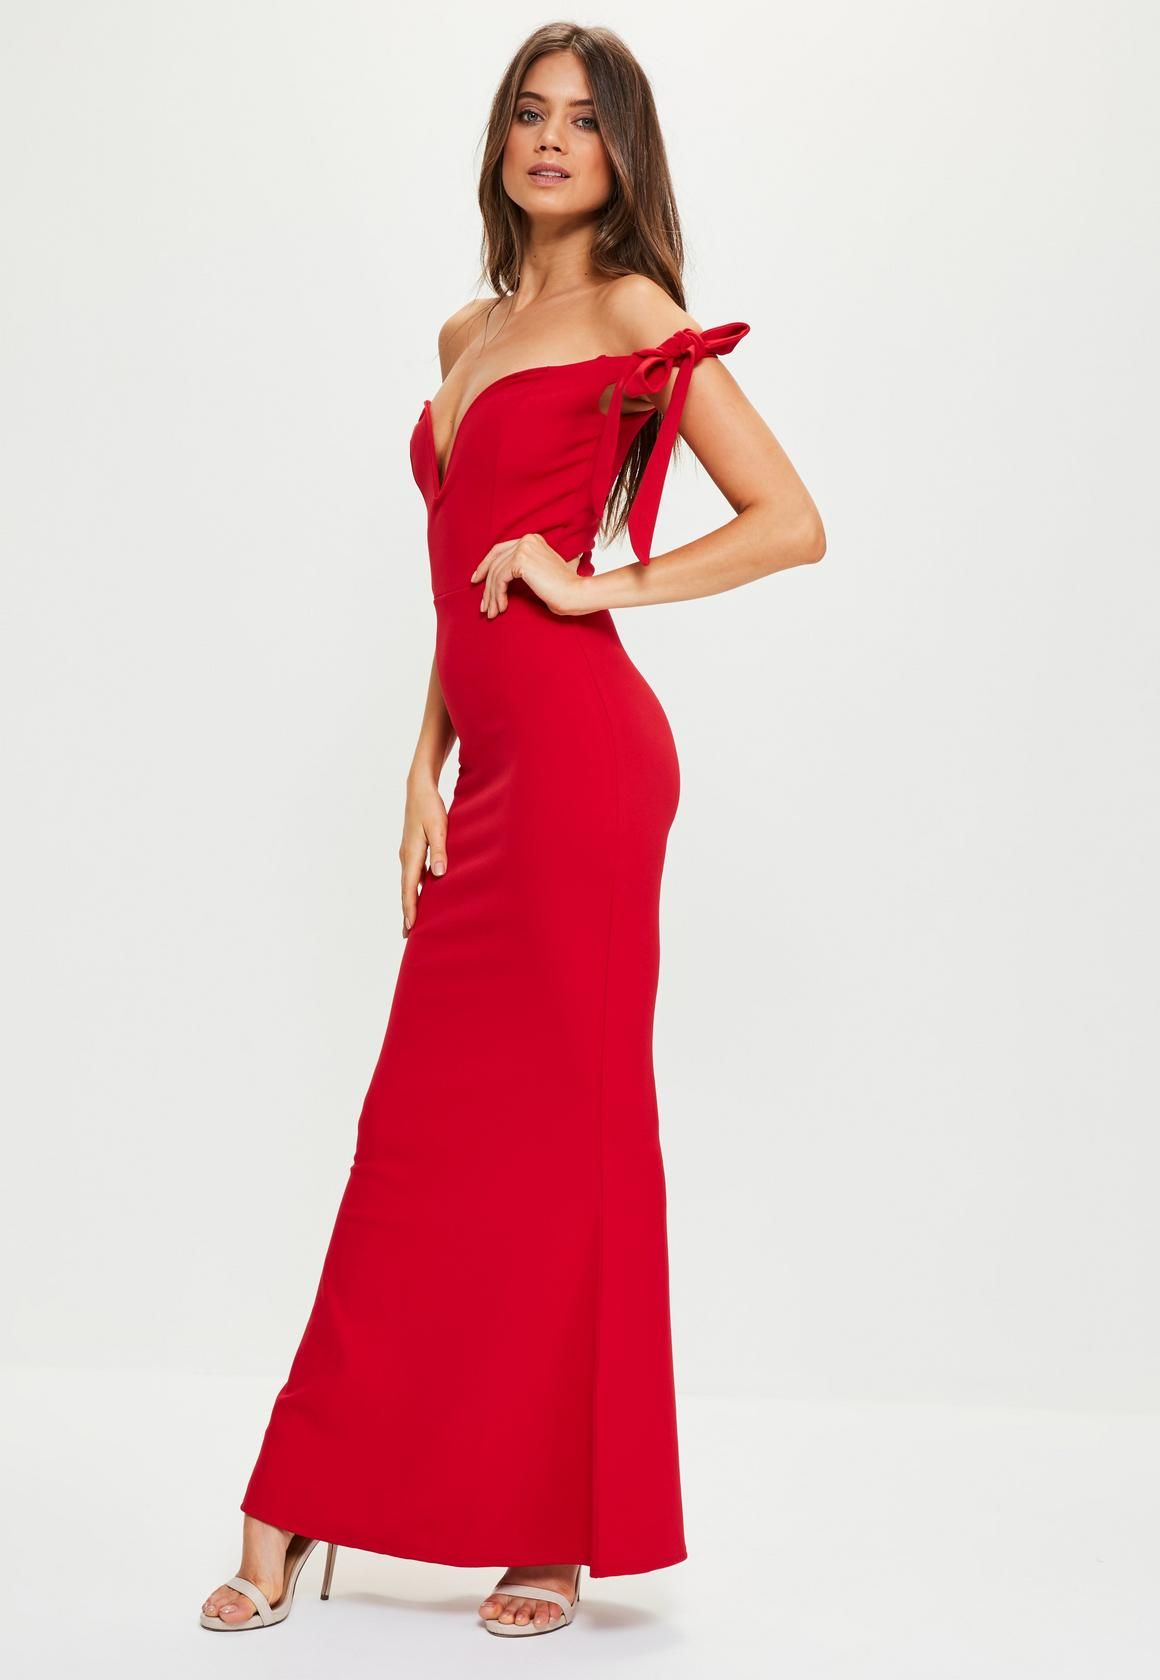 99a105c44d Missguided - Red Sweetheart Neck Bardot Tie Maxi Dress